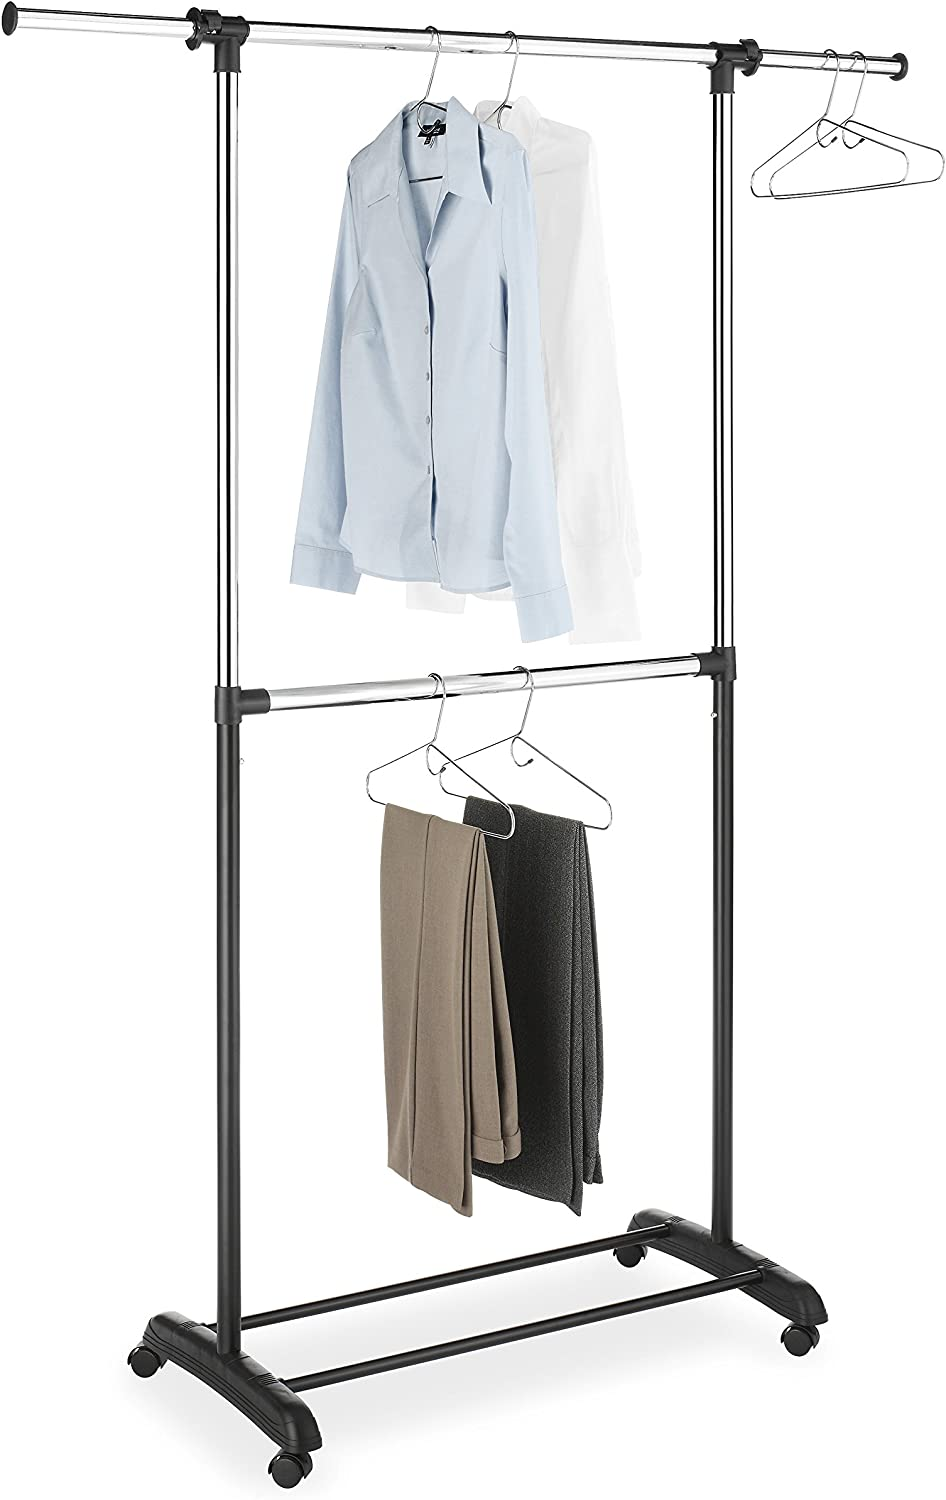 Whitmor Adjustable 2-Rod Garment Rack - Rolling Clothes Organizer - Black and Chrome: Home & Kitchen